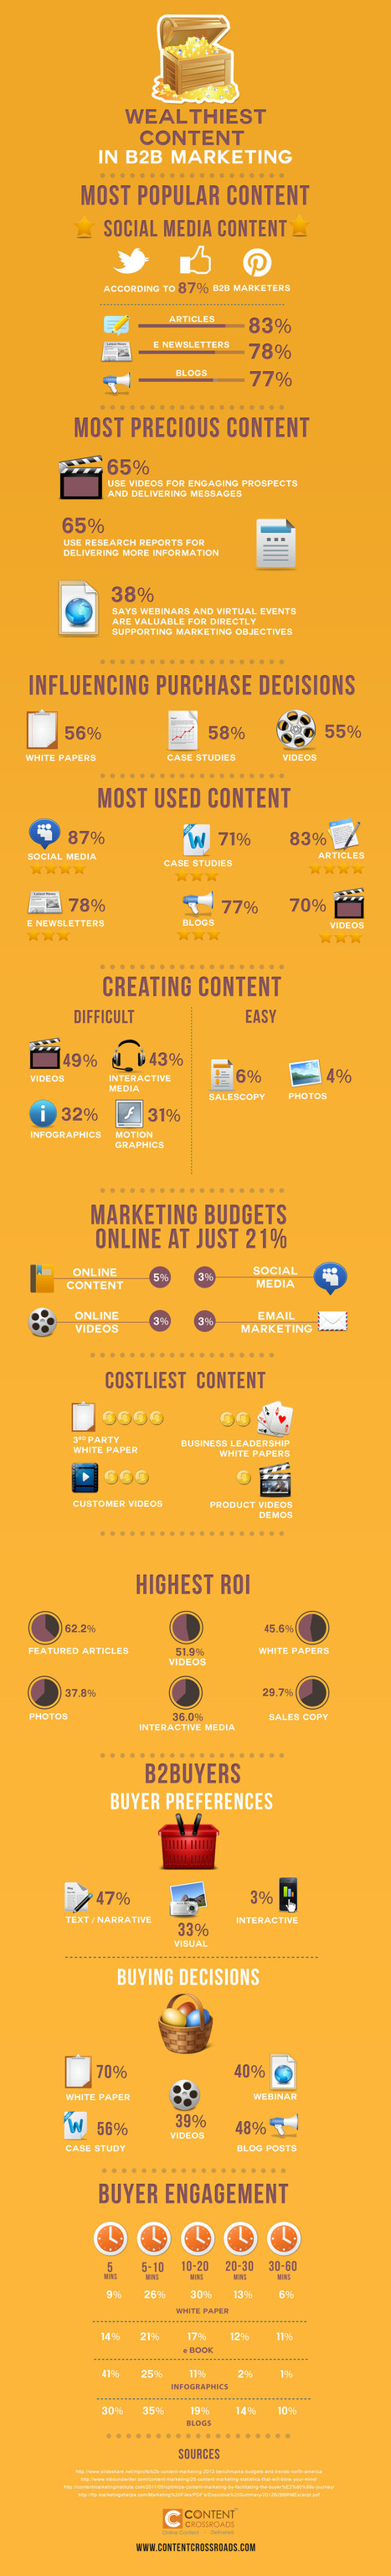 The Most Profitable Content in B2B Marketing [Infographic] | Beyond Marketing | Scoop.it